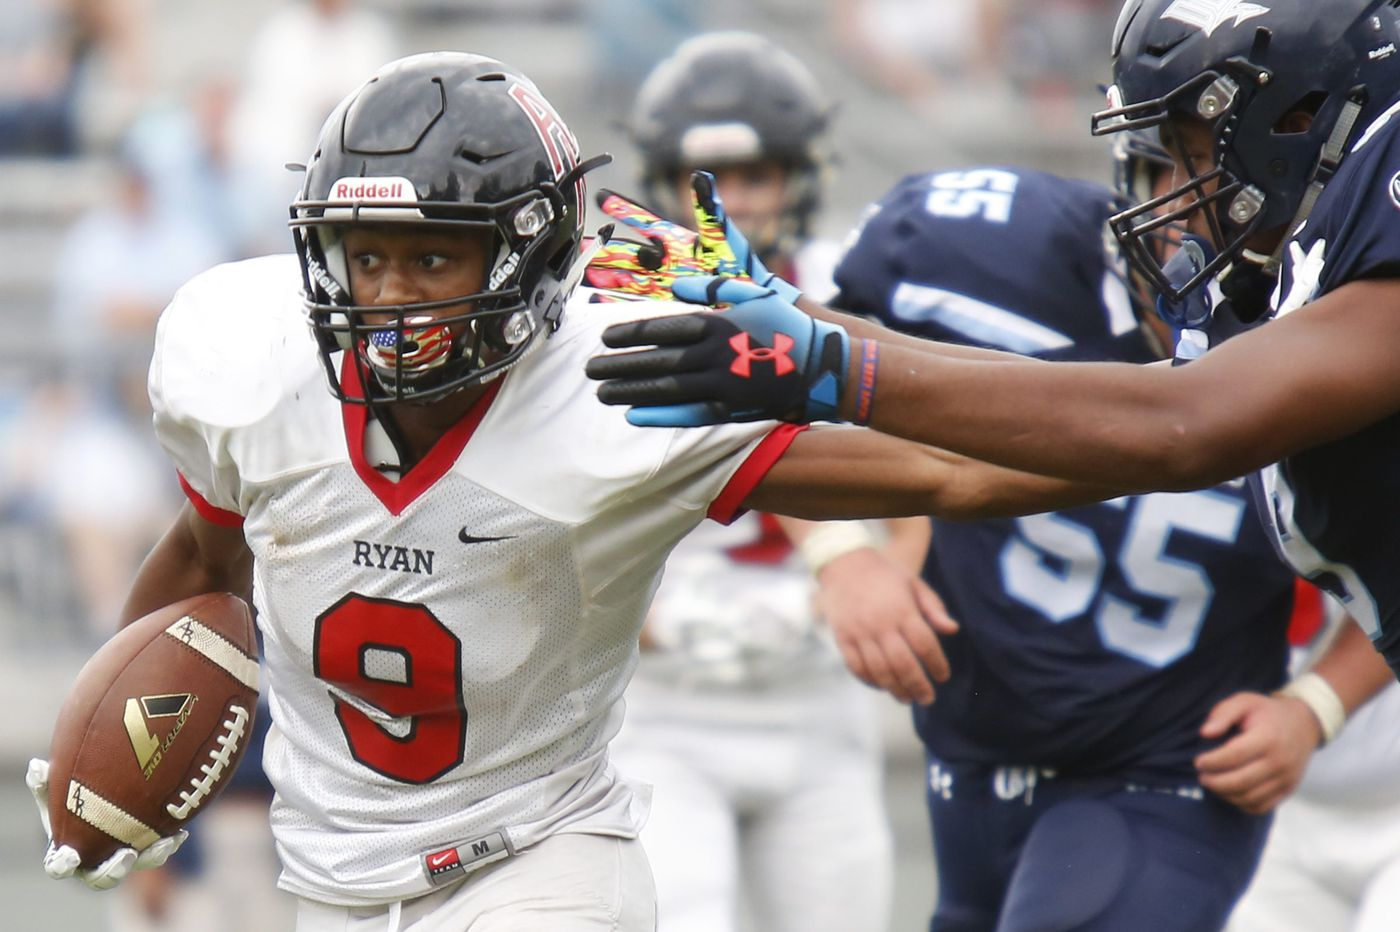 Archbishop Wood aims to deal Archbishop Ryan its first football loss